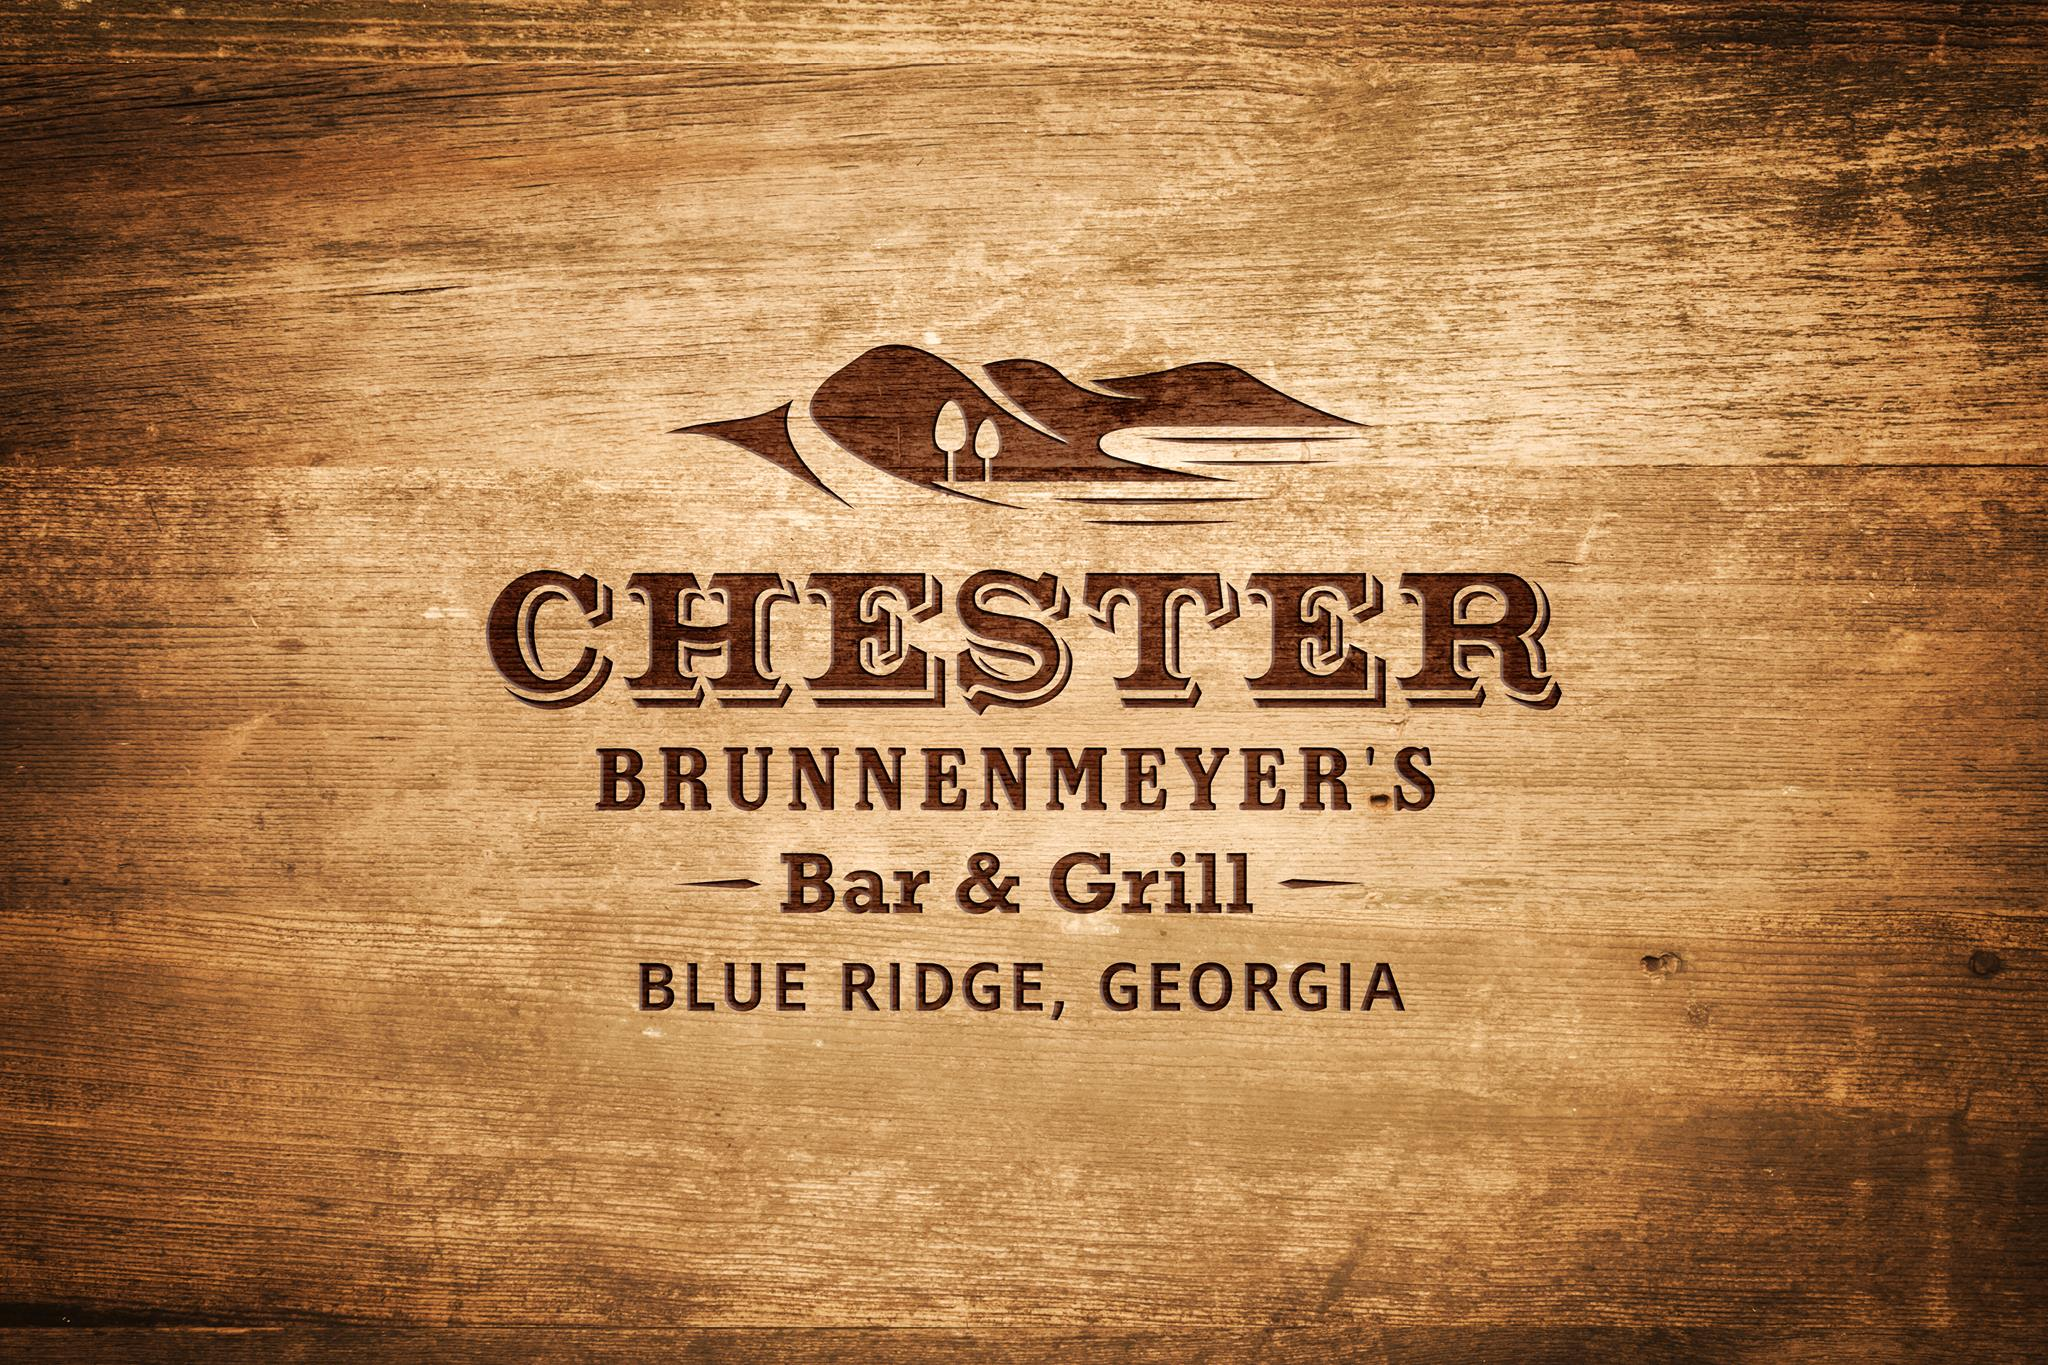 Chester Brunnenmeyer's Bar & Grill